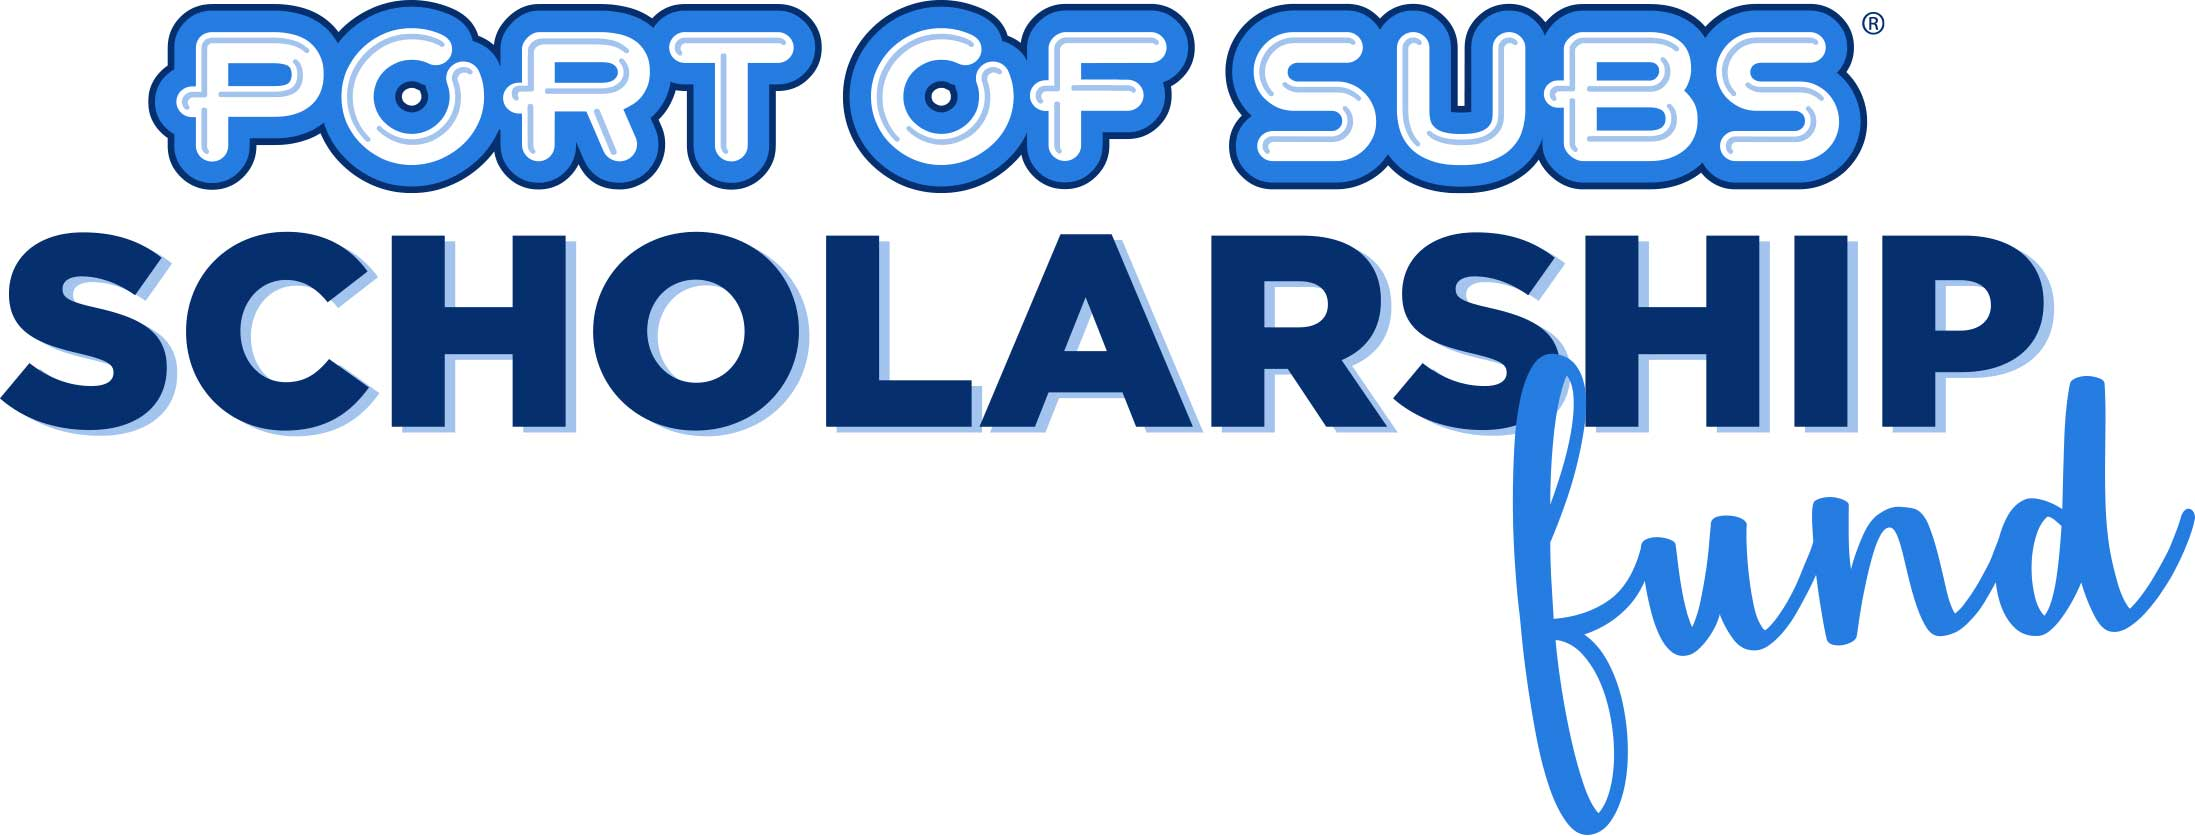 Port of Subs Scholarship Fund